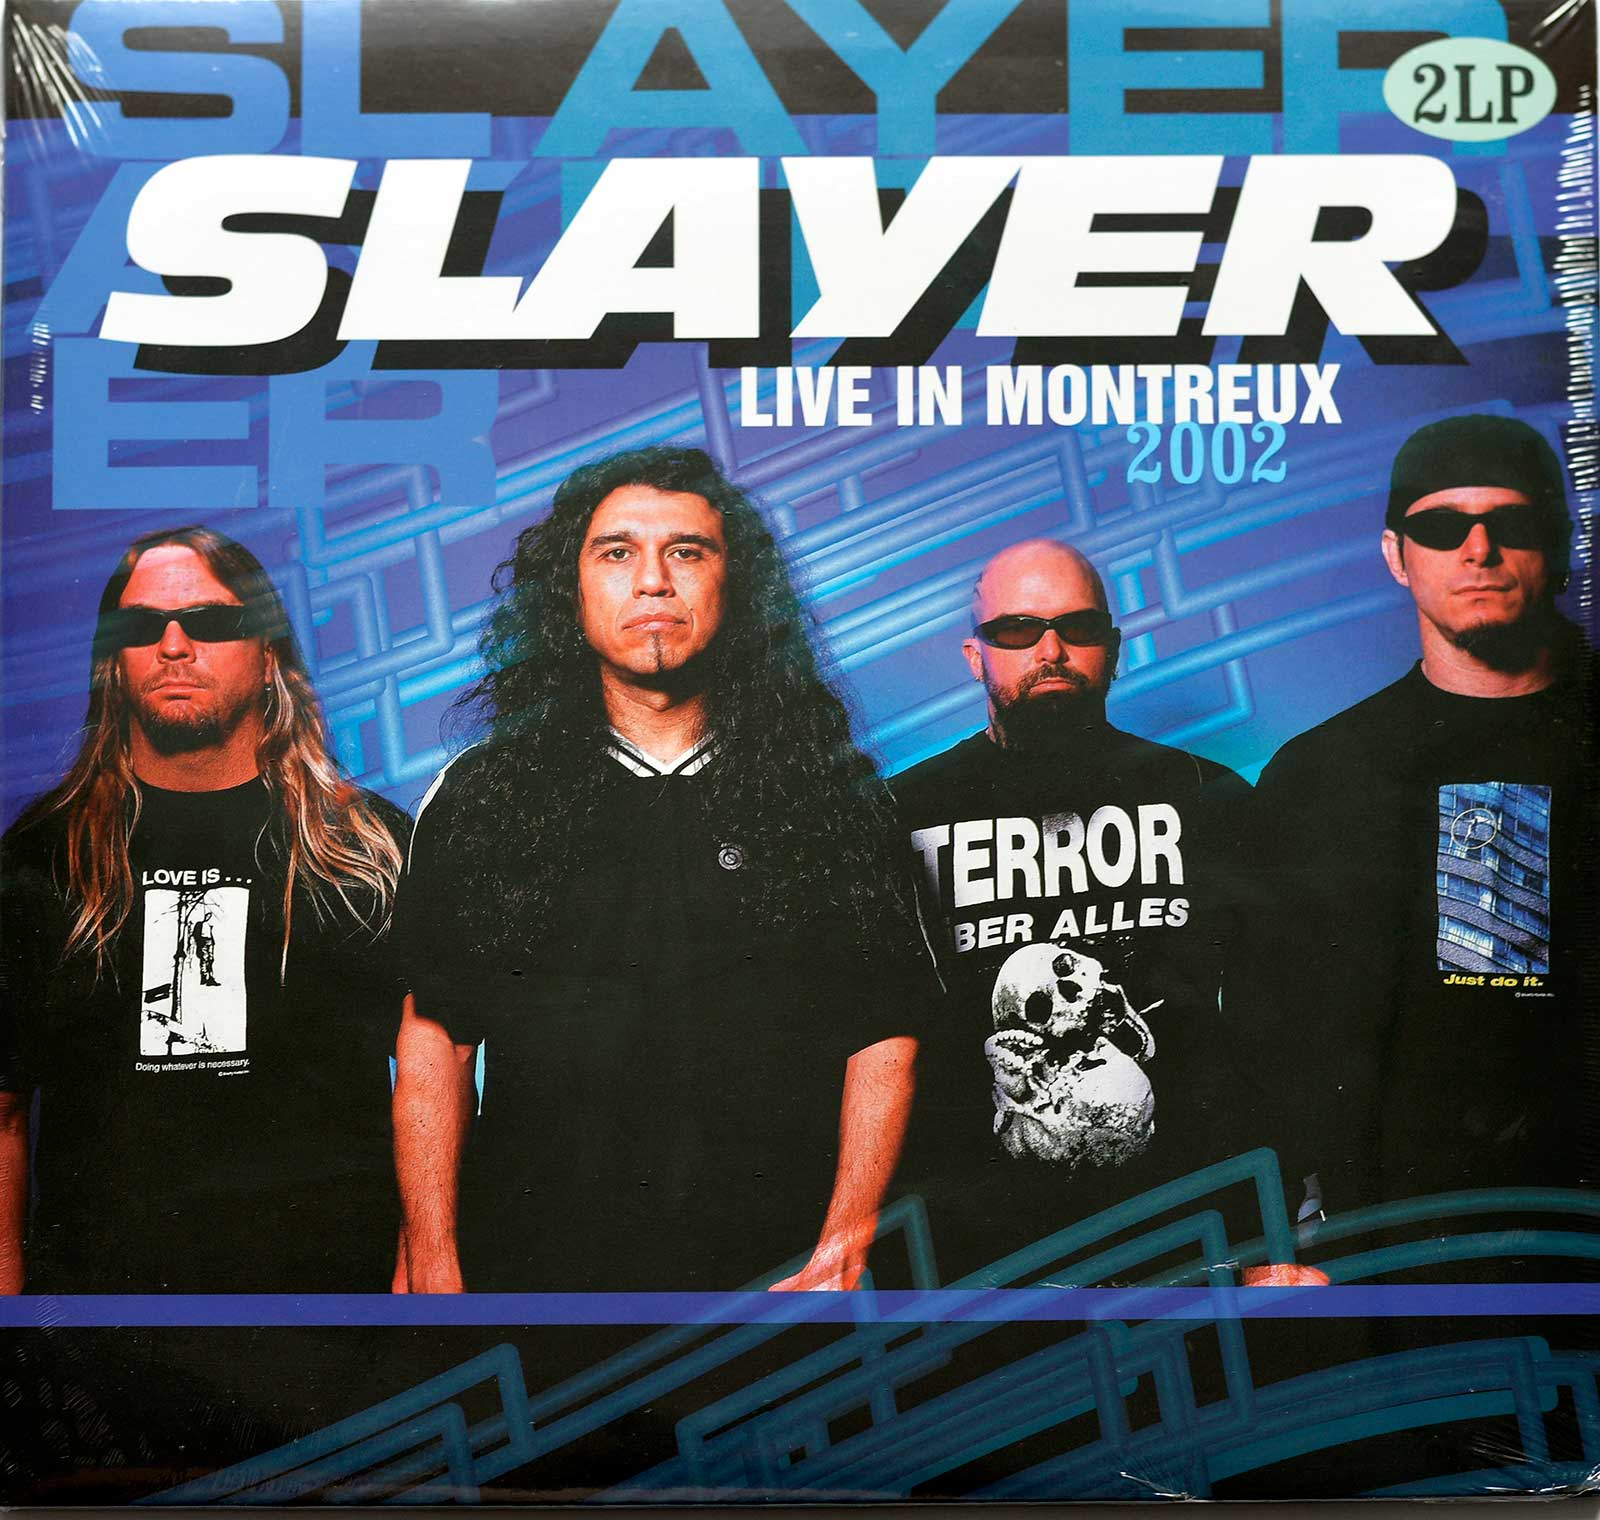 Album Front cover Photo of SLAYER Live in Montreux 2002 2LP https://vinyl-records.nl/